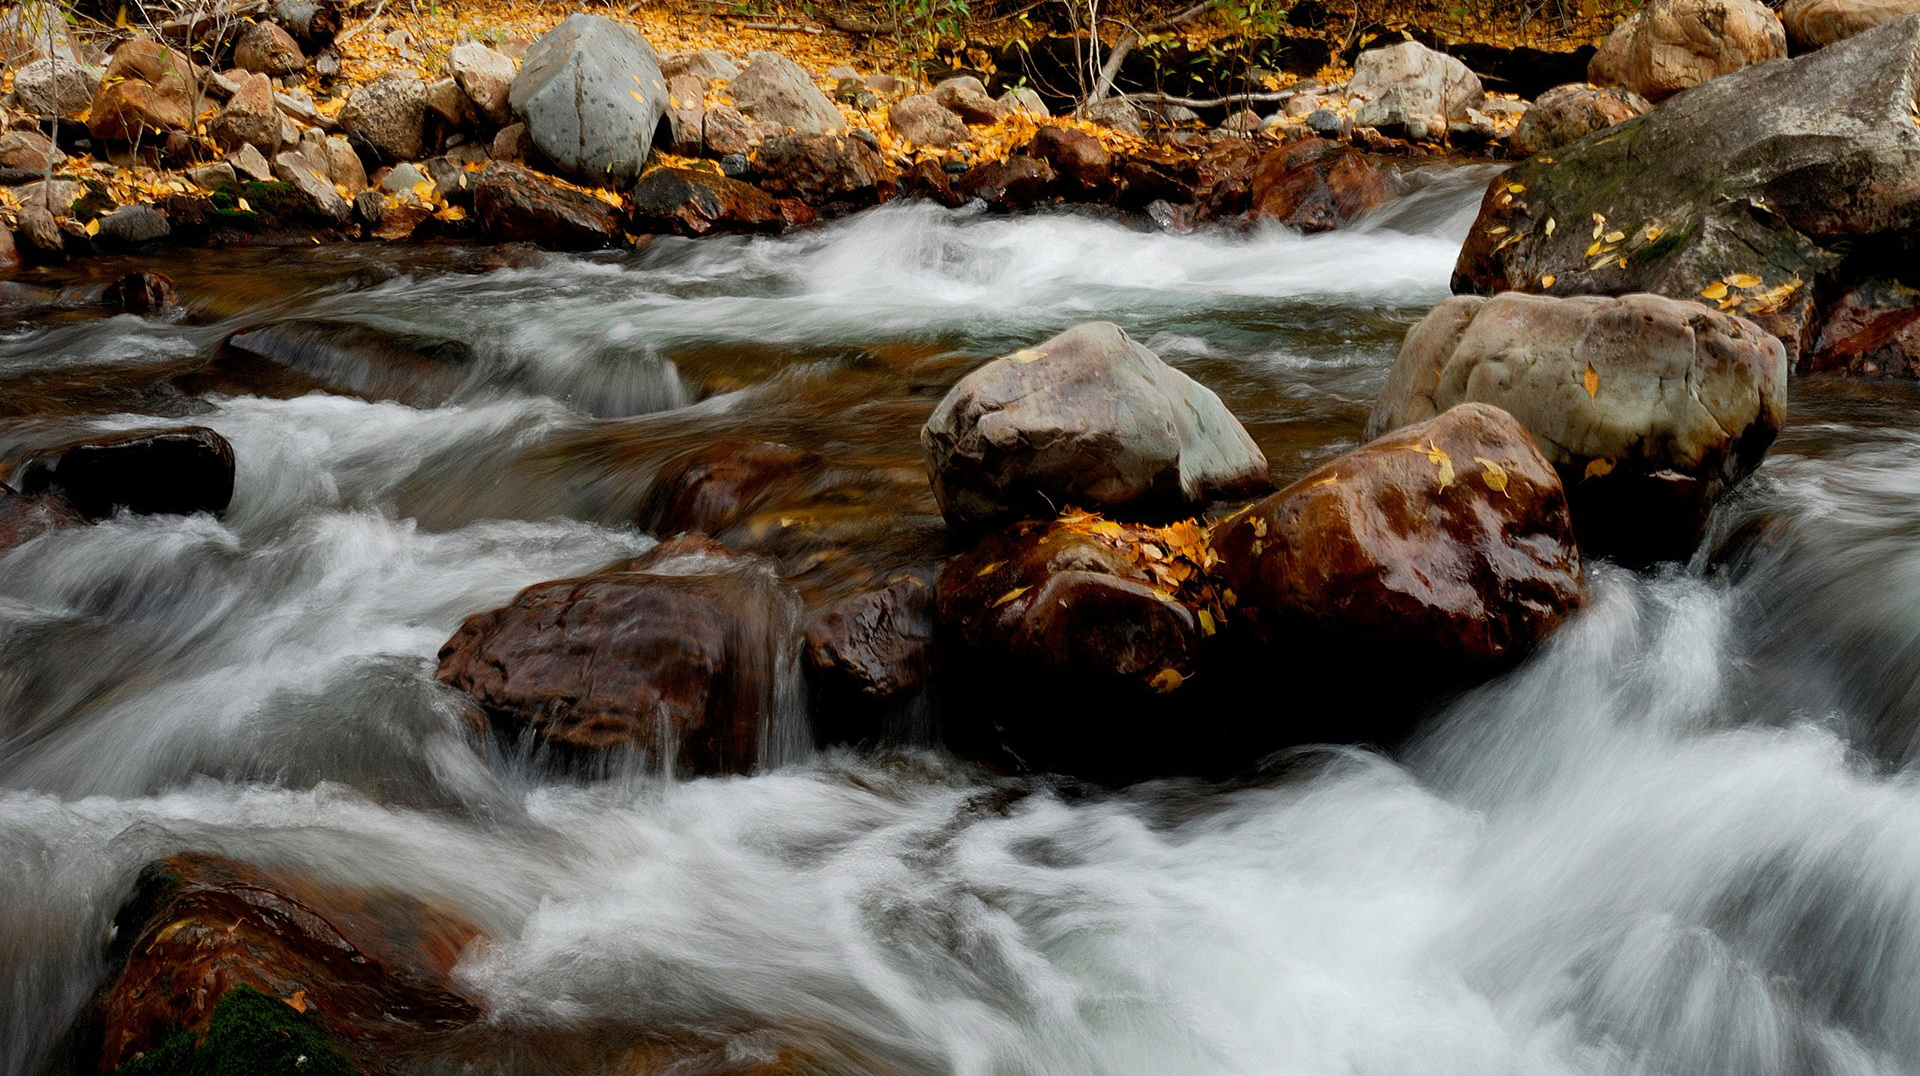 click to free download the wallpaper--beautiful scenery pictures - River in Rapid Flow, Big Yellow Stones in the Middle, a Clear and Moving Scene 1920X1080 free wallpaper download